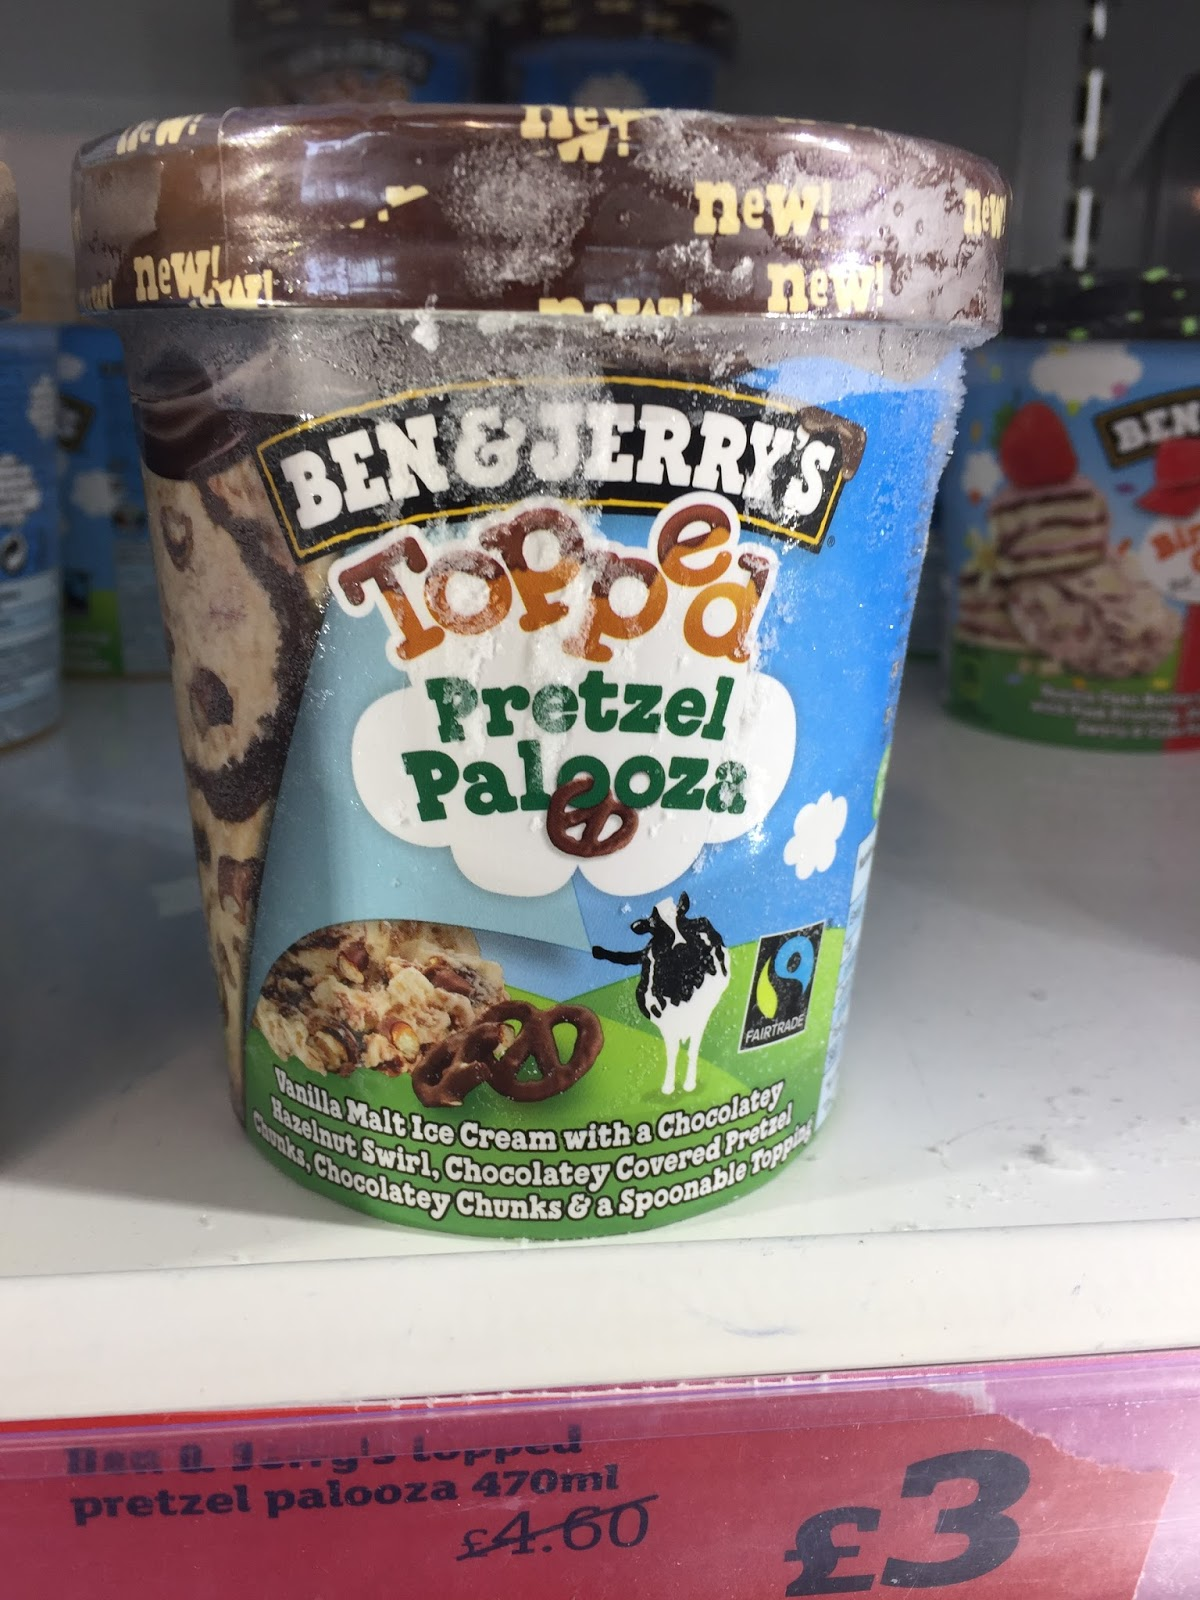 ben jerry s birthday cake topped pretzel palooza spotted in shops